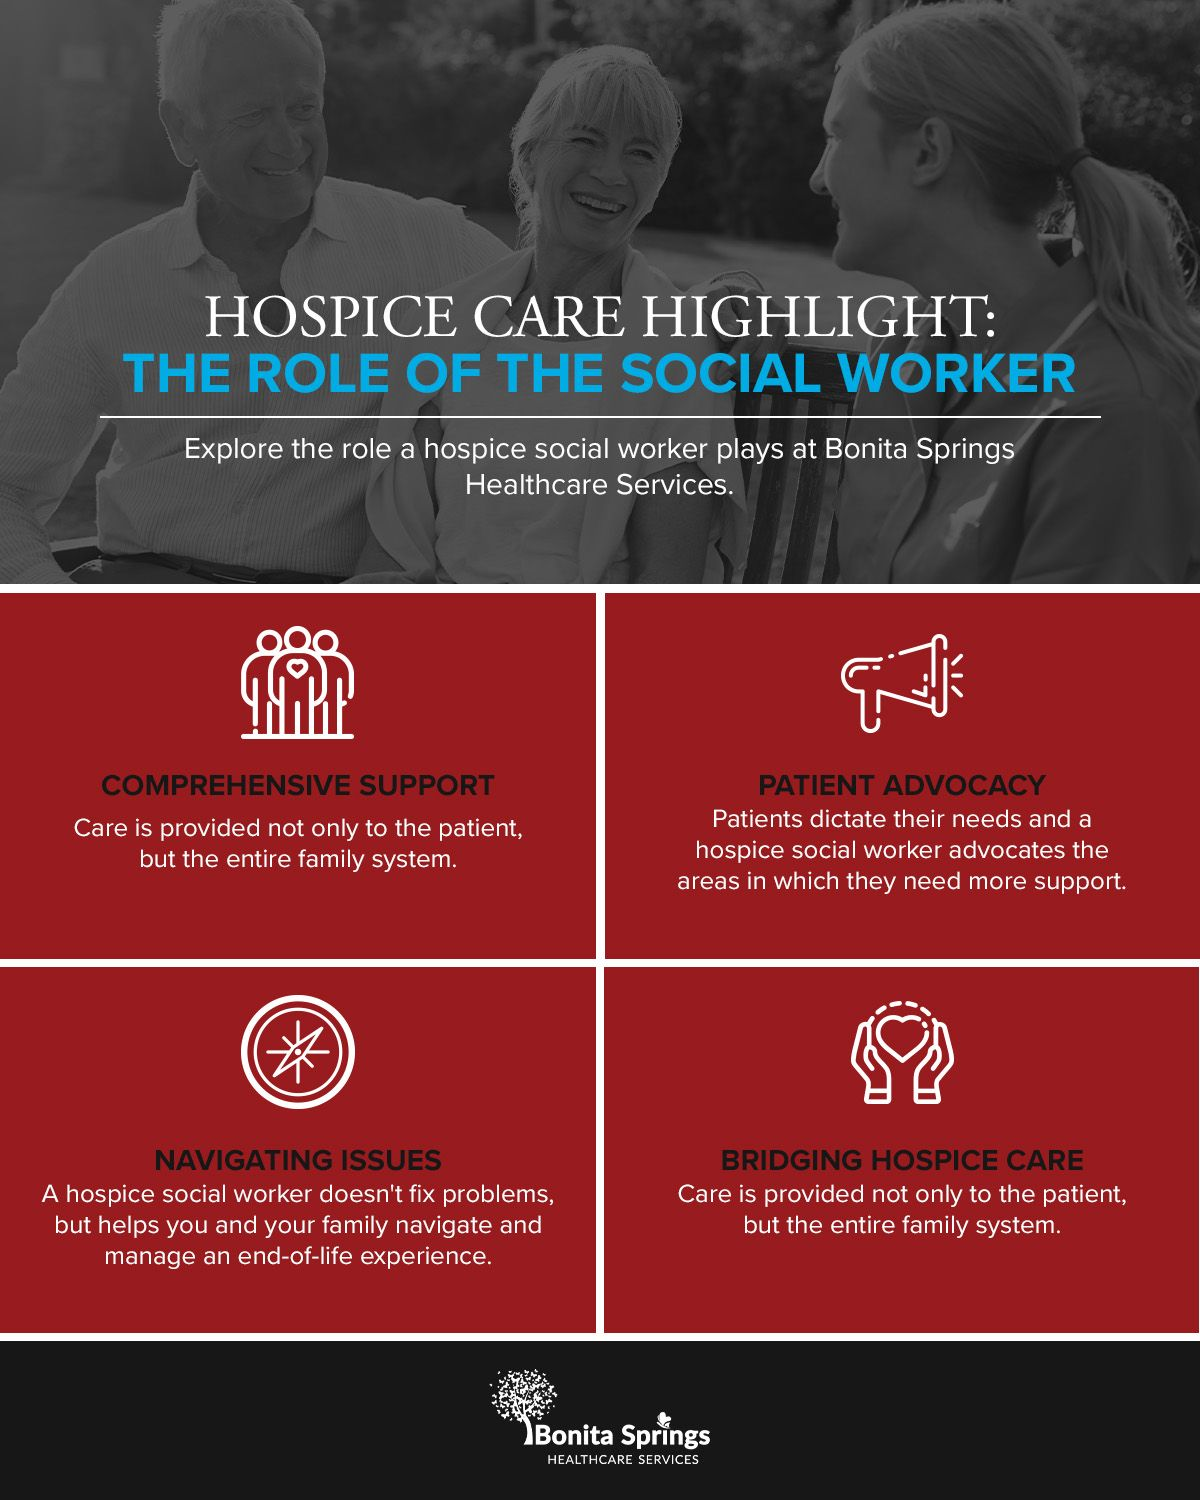 The Role Of The Social Worker.jpg